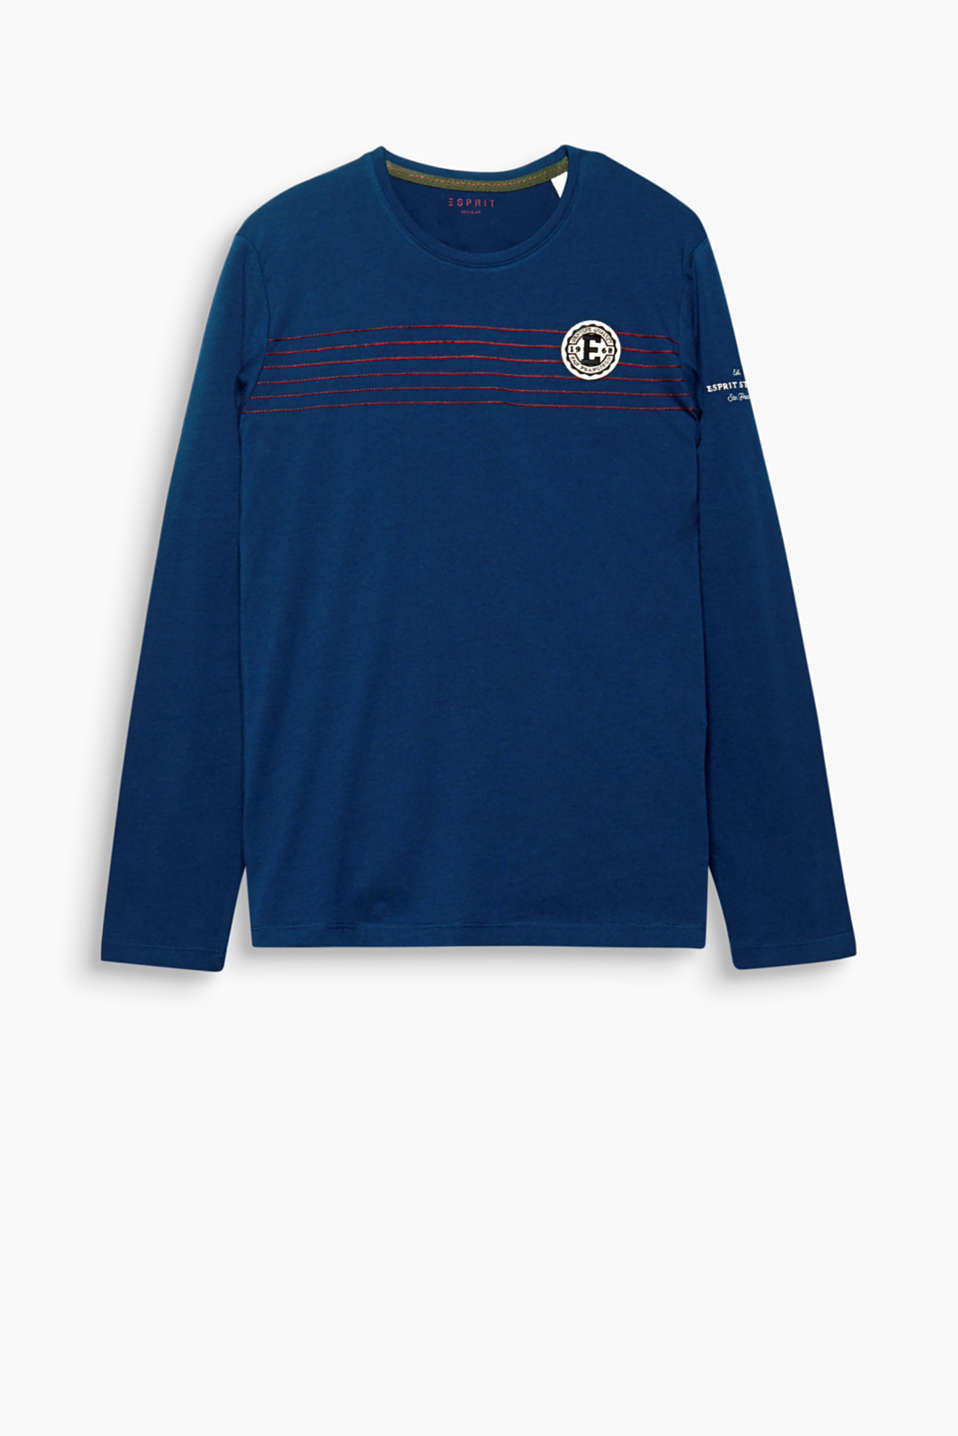 Sporty! This long sleeve top features appliquéd logo emblems and embroidered stripes.